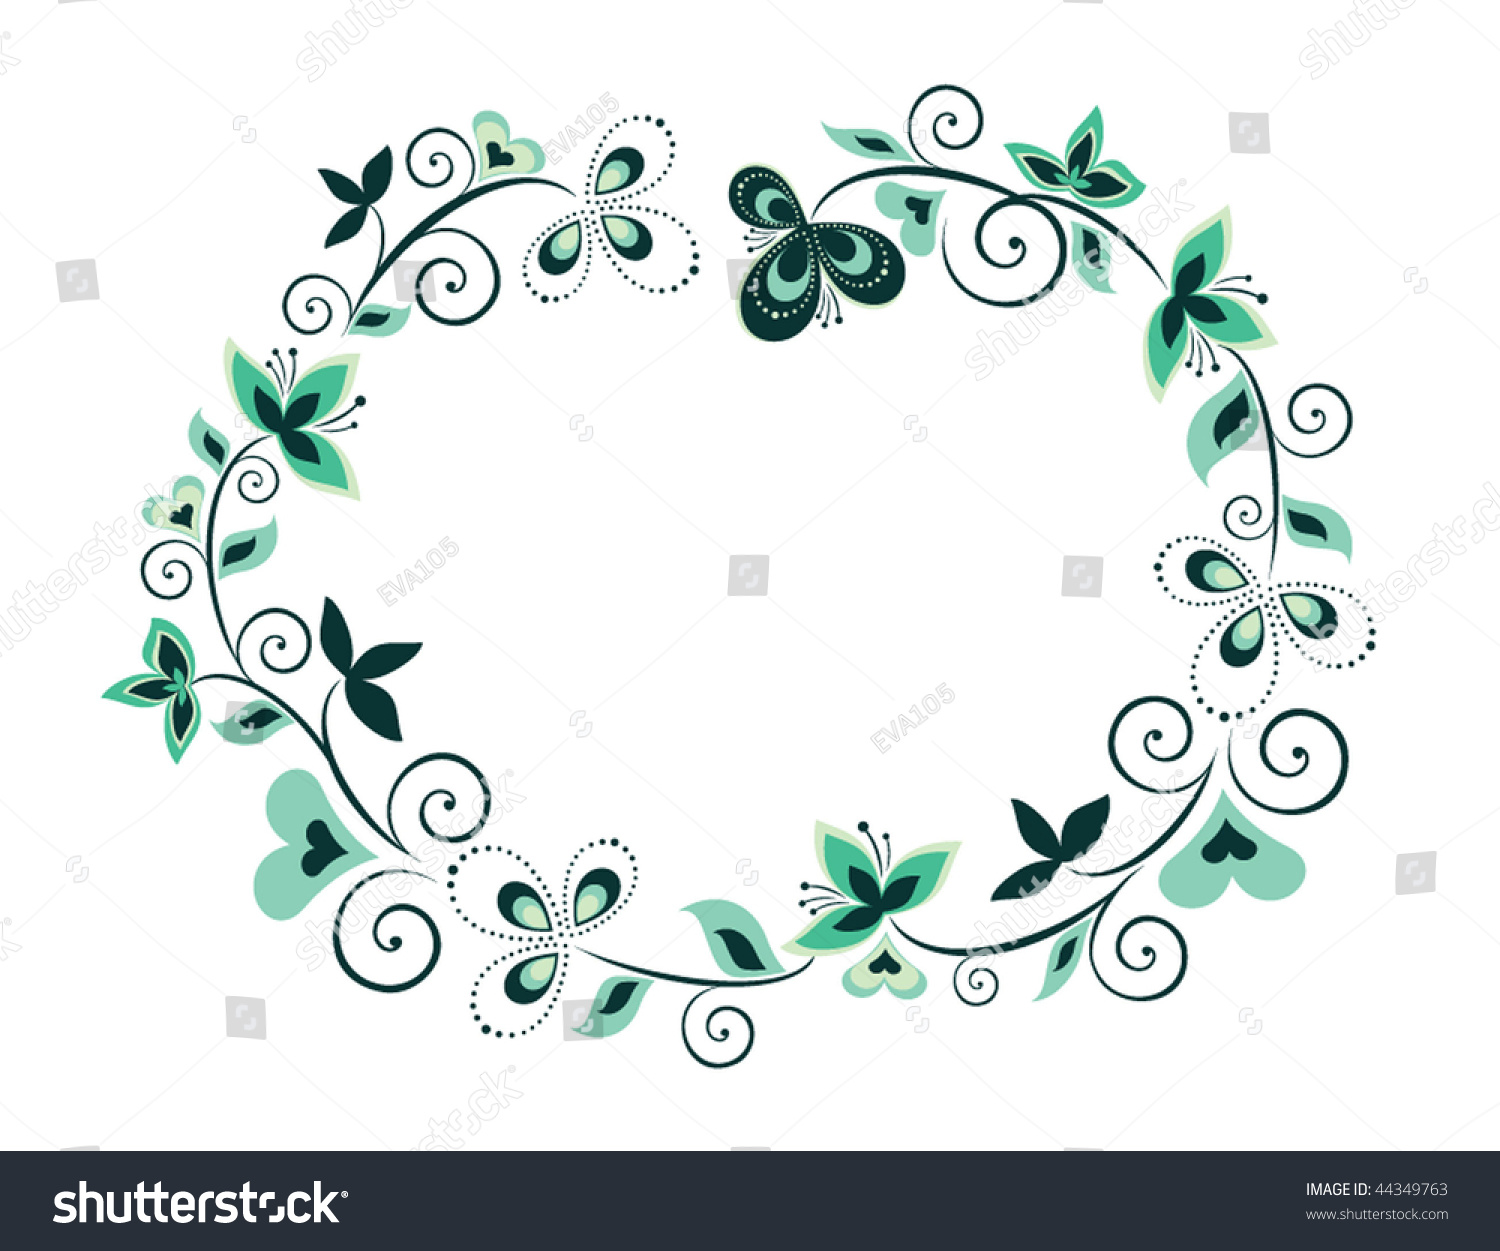 Decorative Black Flower Border Stock Image: Decorative Floral Border Stock Vector 44349763